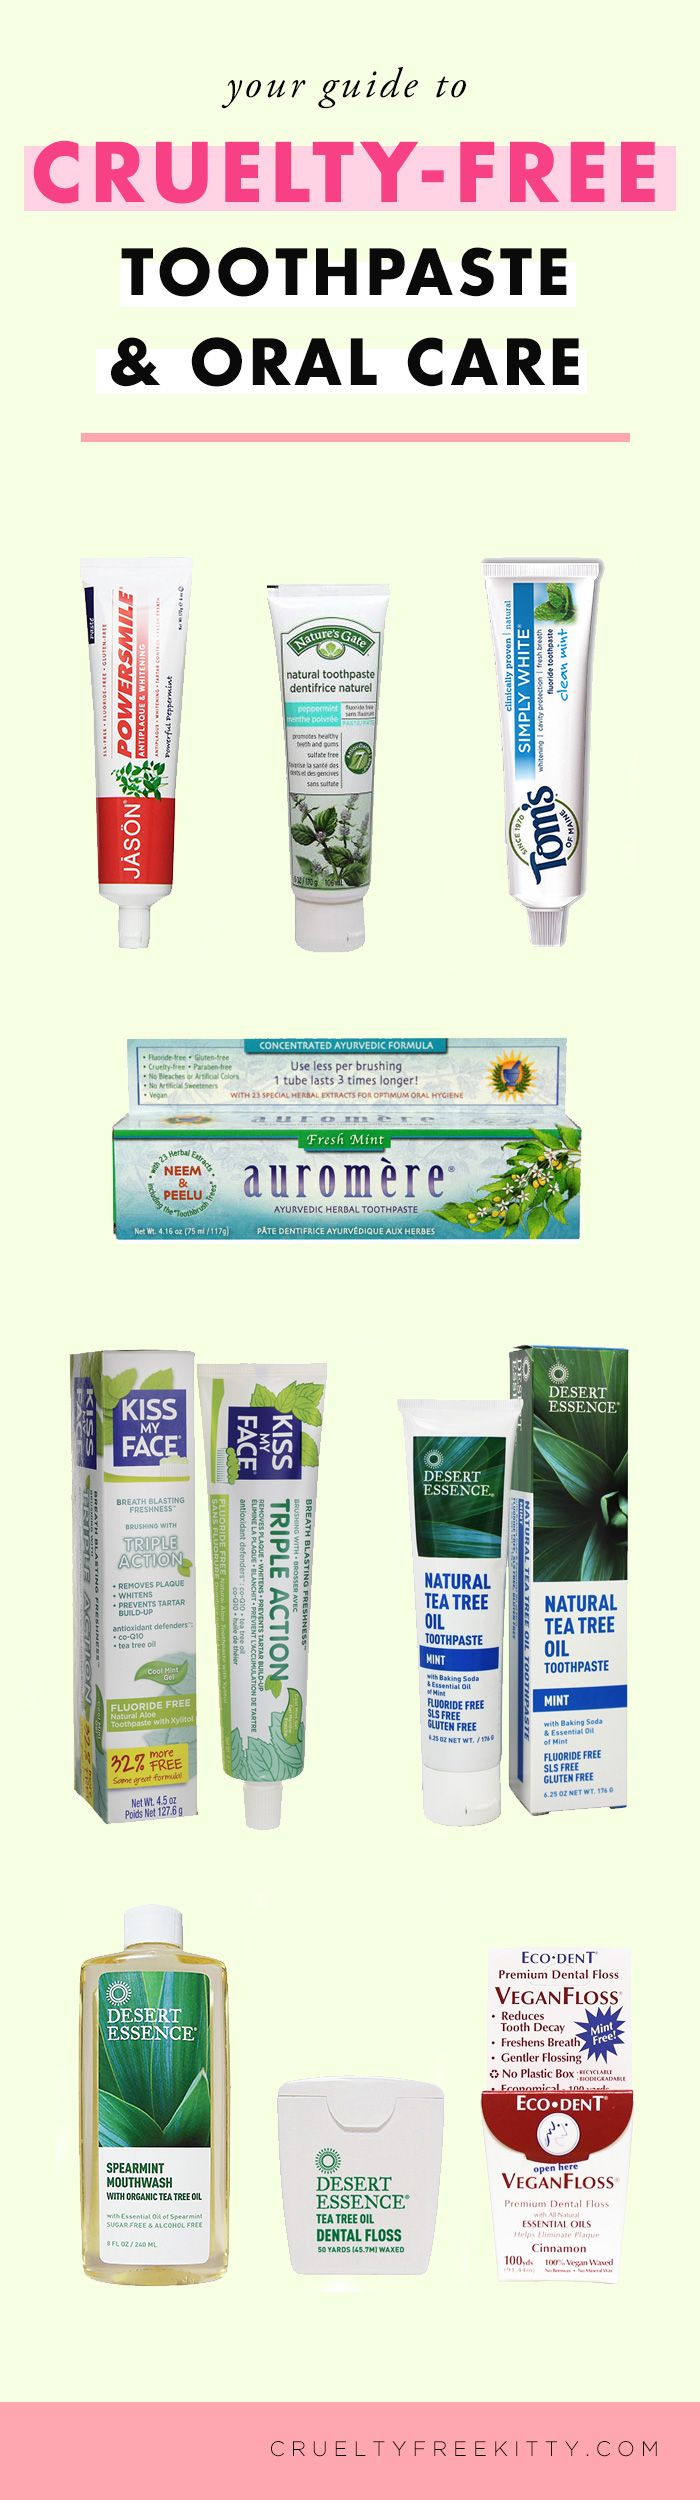 Great cruelty-free options for toothpaste and dental care.